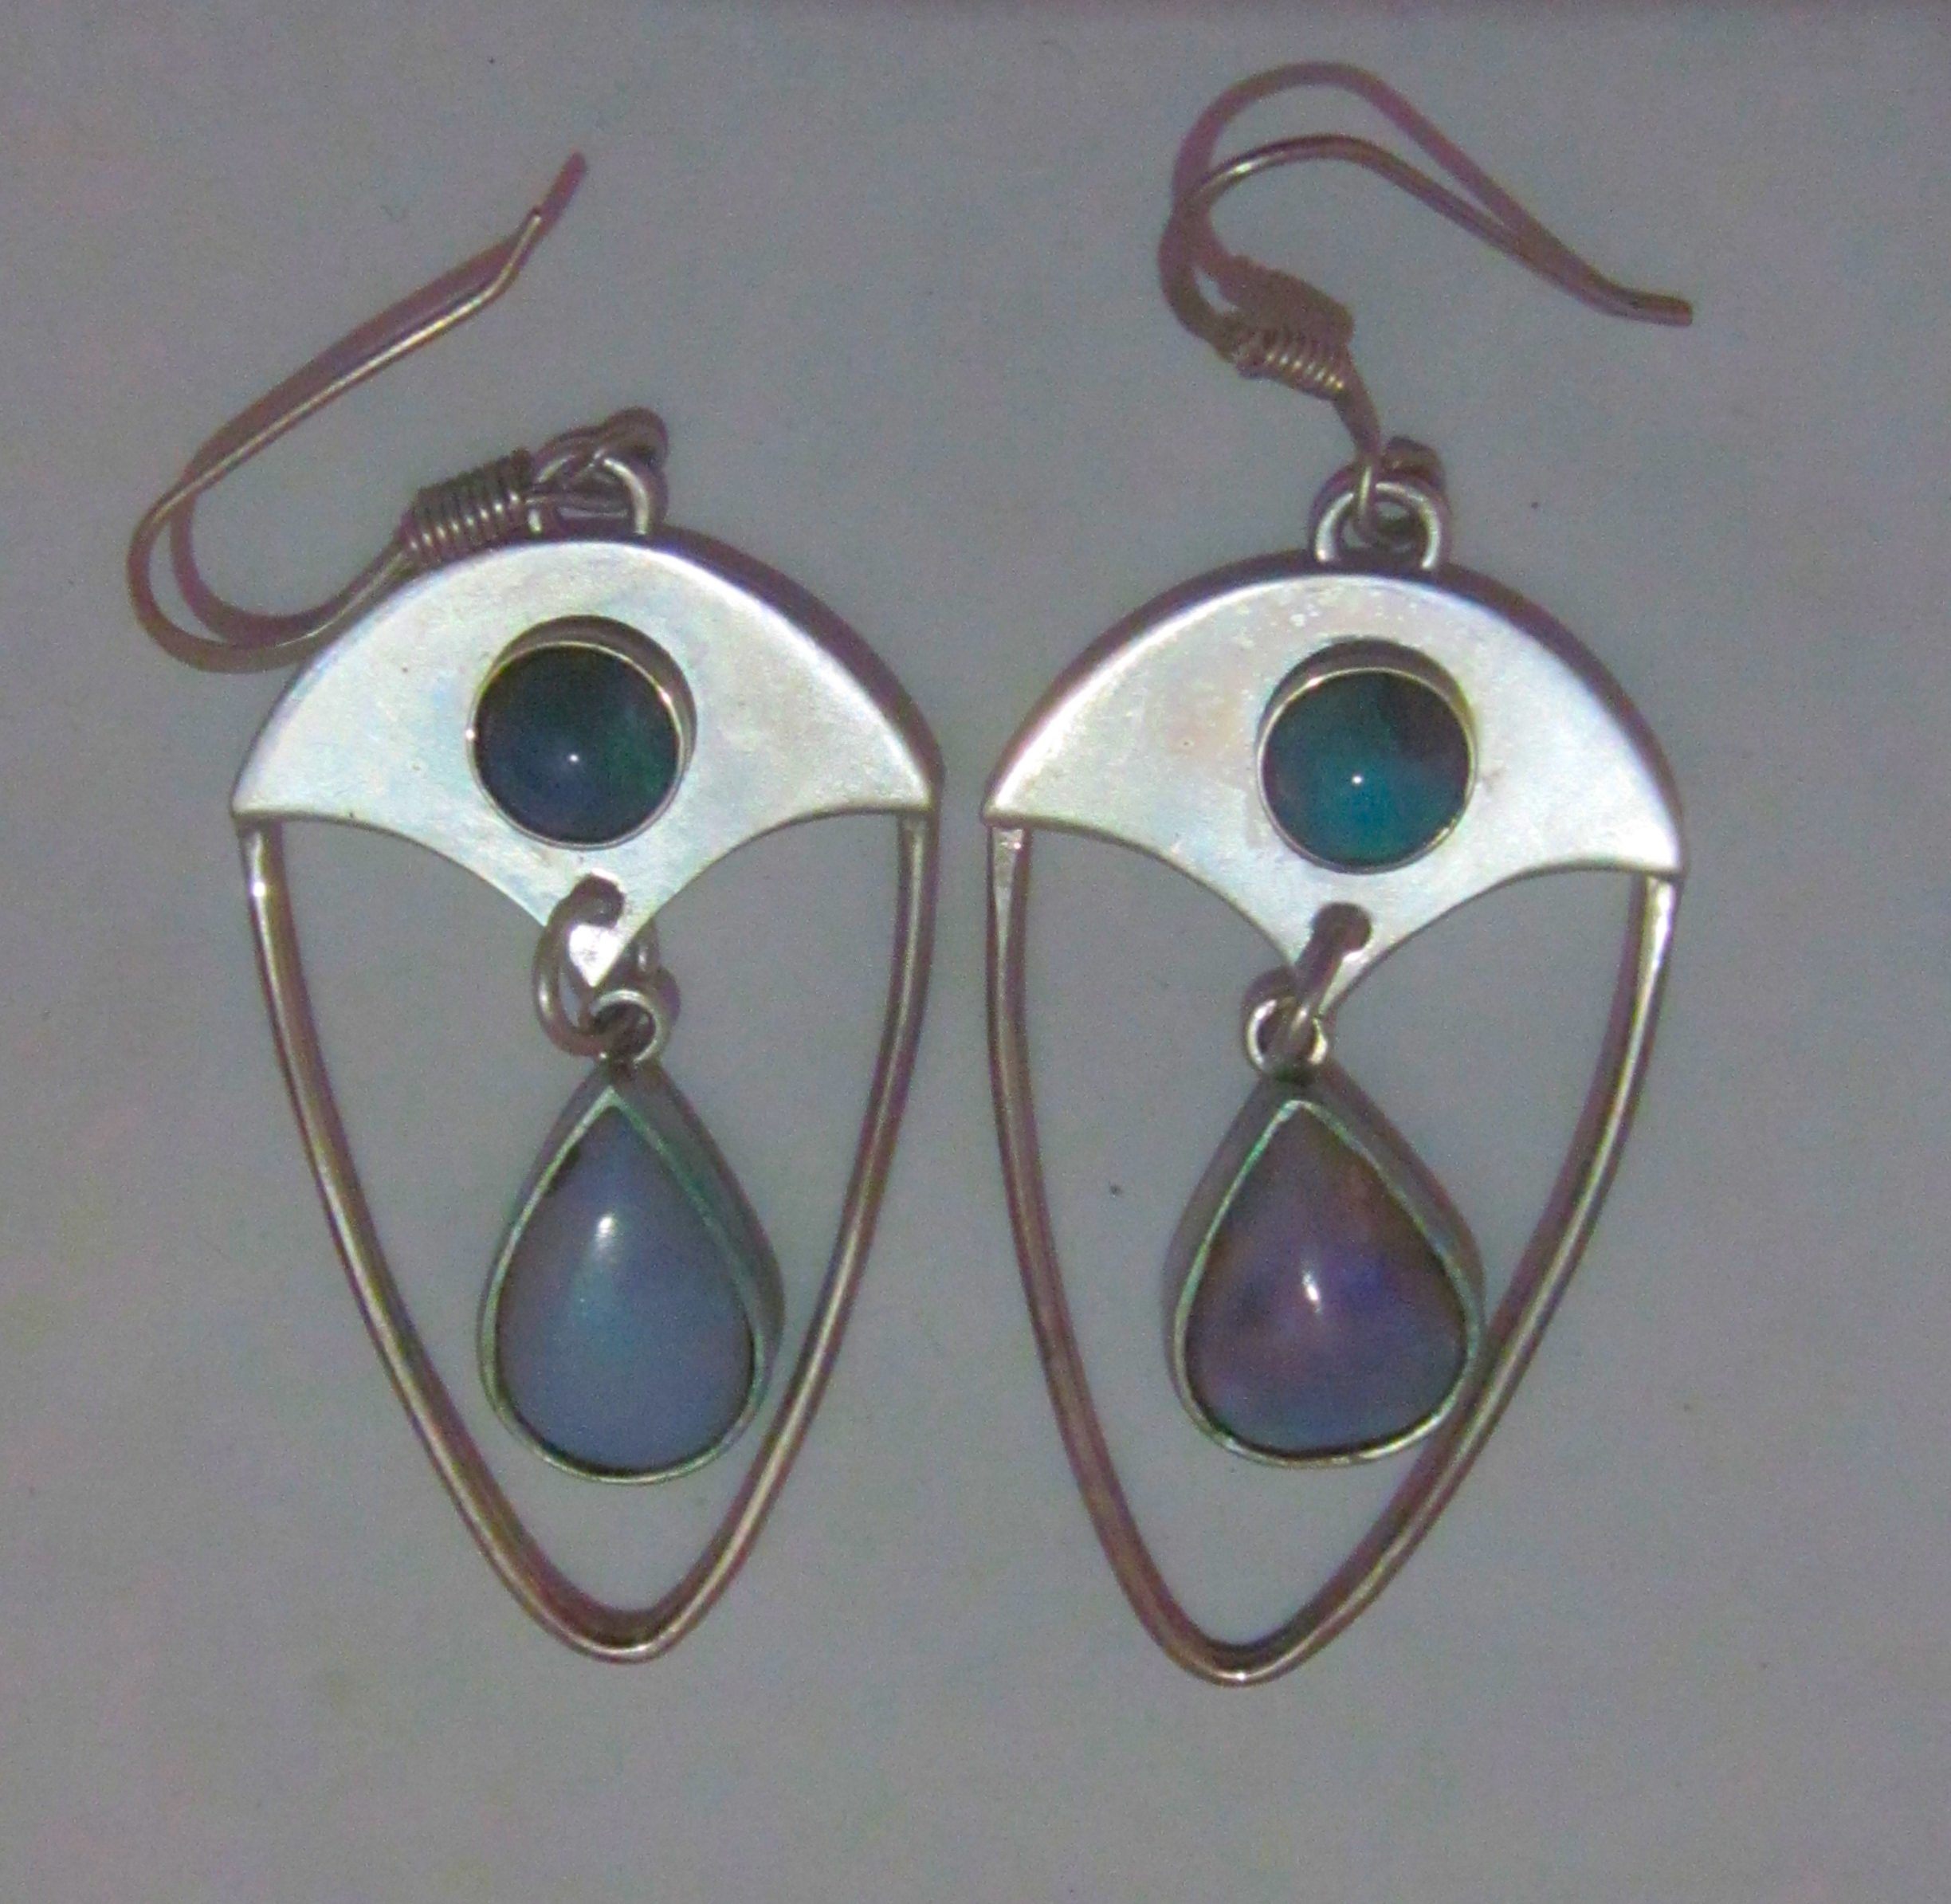 australian opal earring,black opal earrings,earring jewelry,handmade earrings,opal earrings